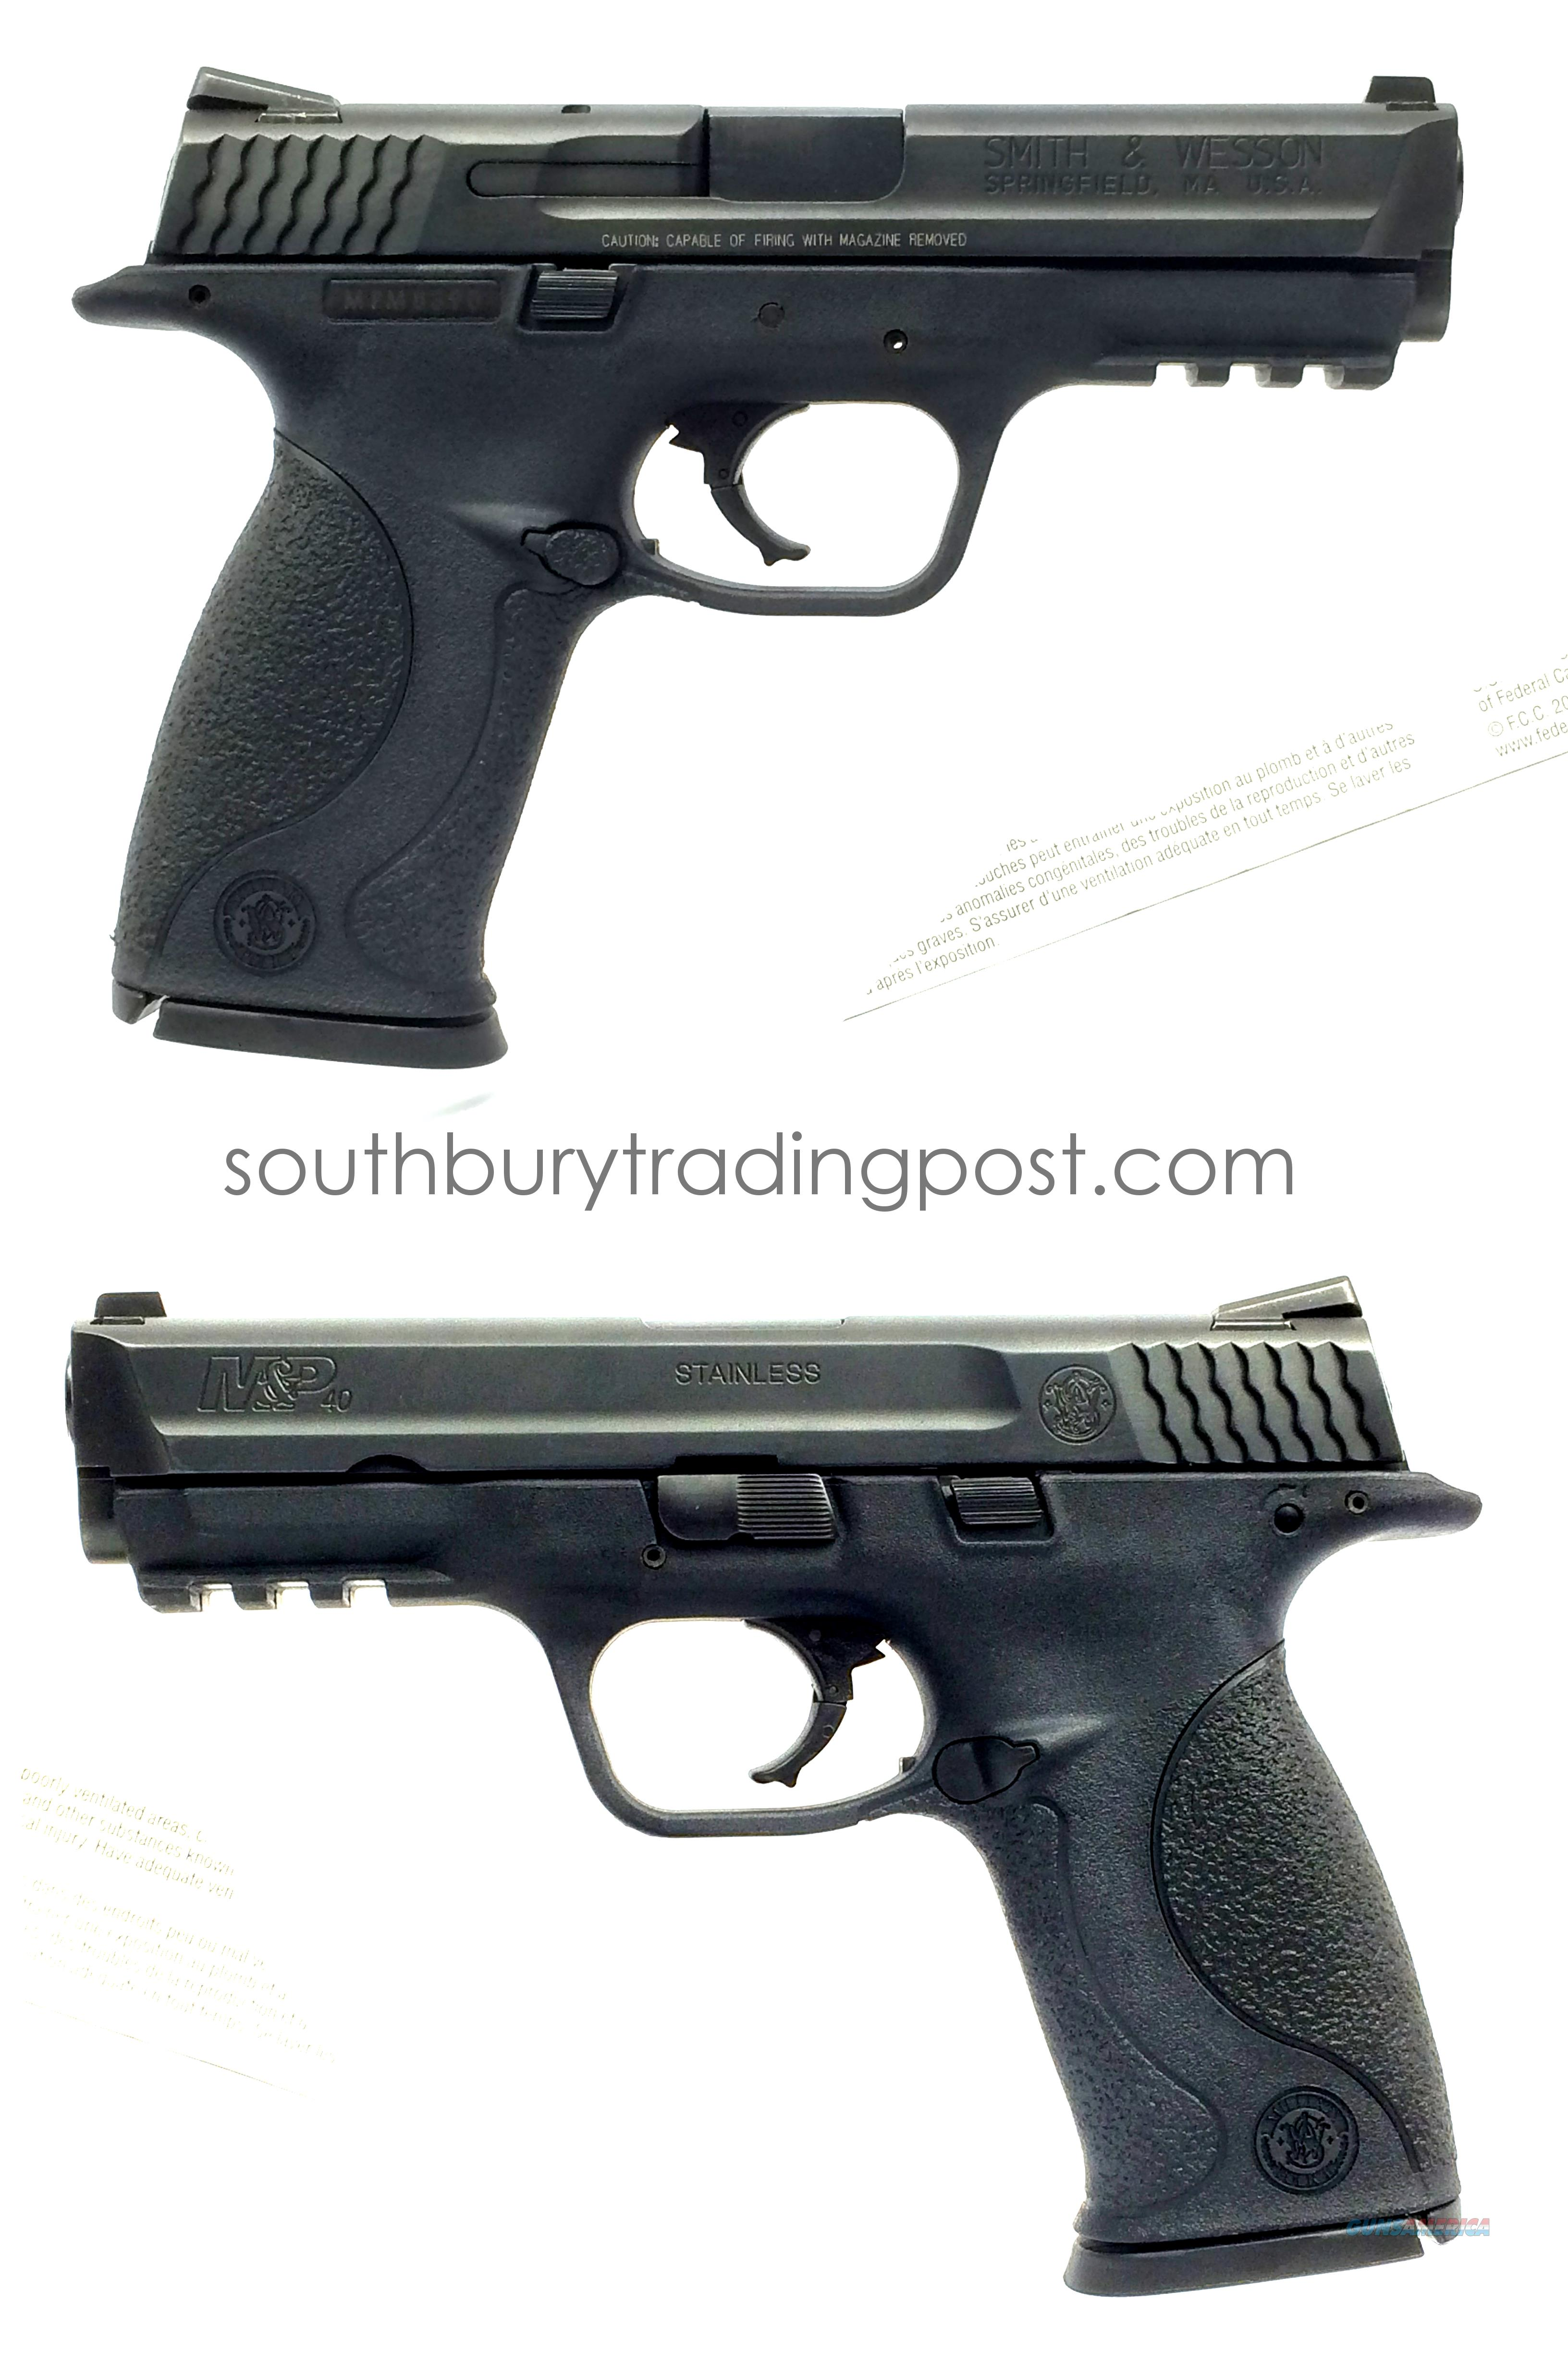 Smith & Wesson M&P40 (.40S&W) Range Kit  Guns > Pistols > Smith & Wesson Pistols - Autos > Polymer Frame